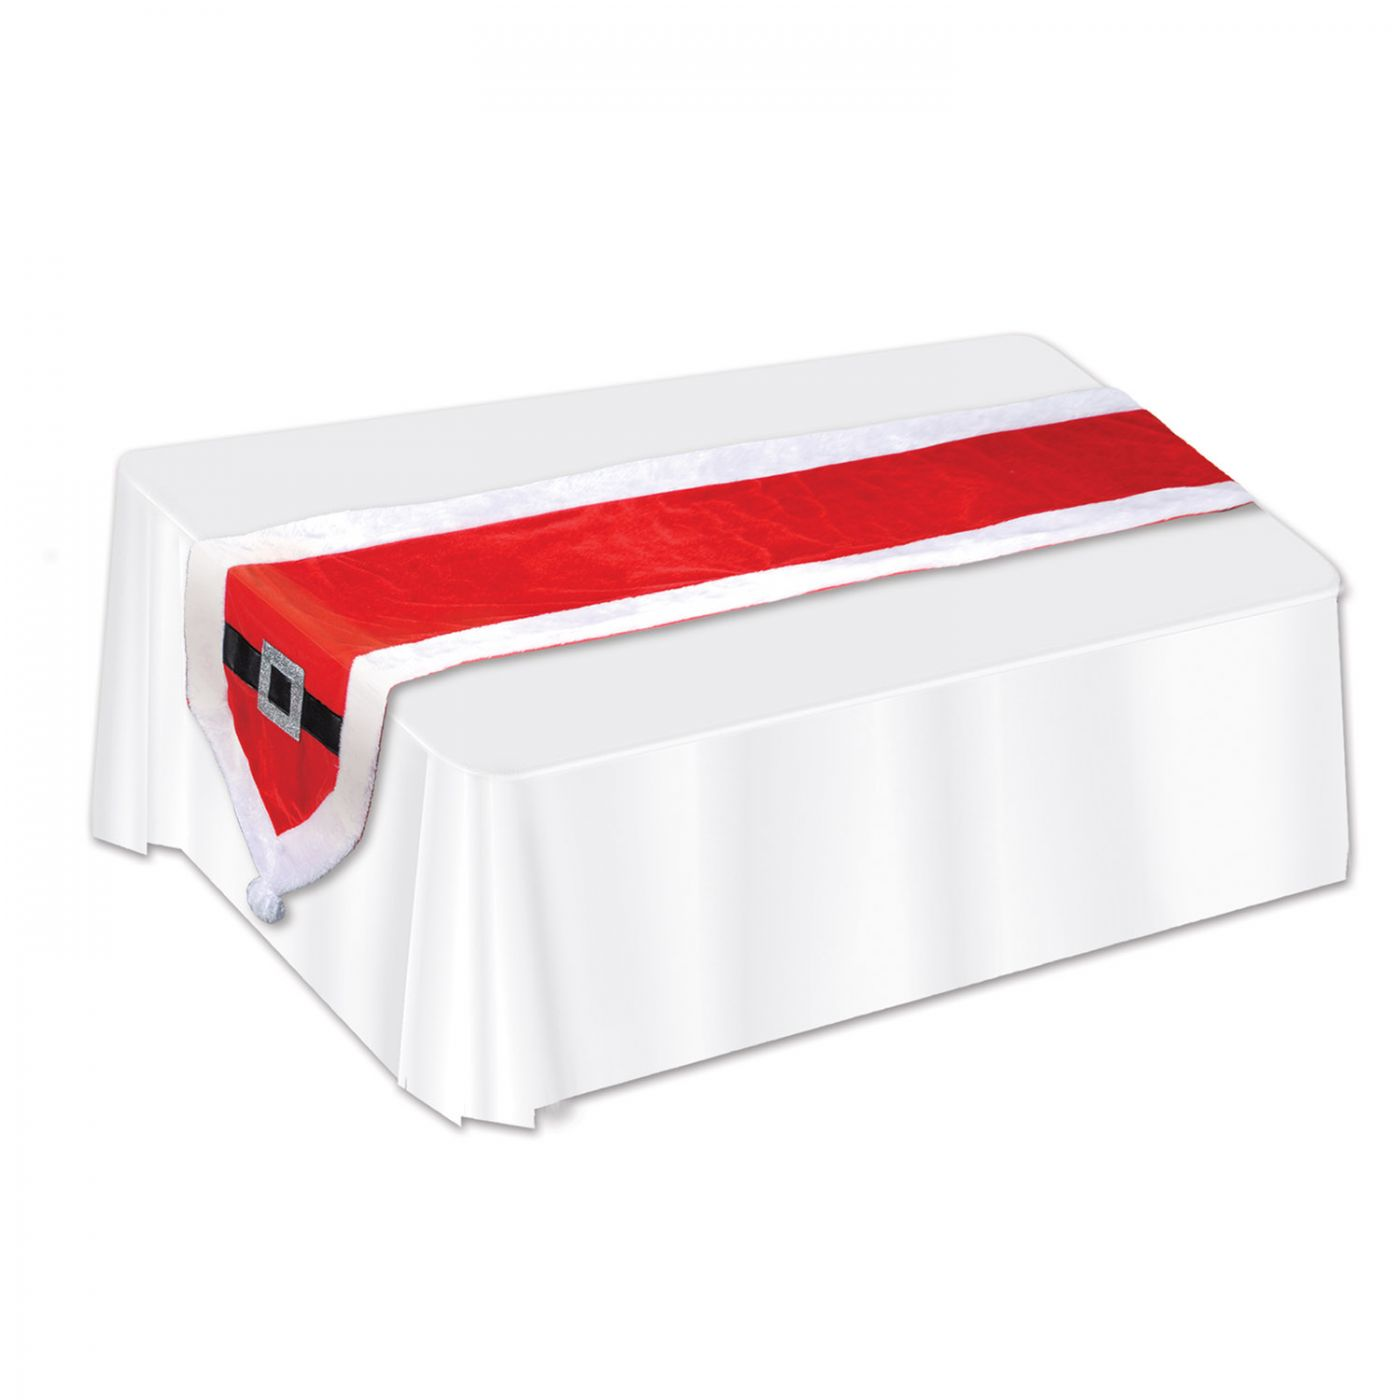 Santa Suit Fabric Table Runner image